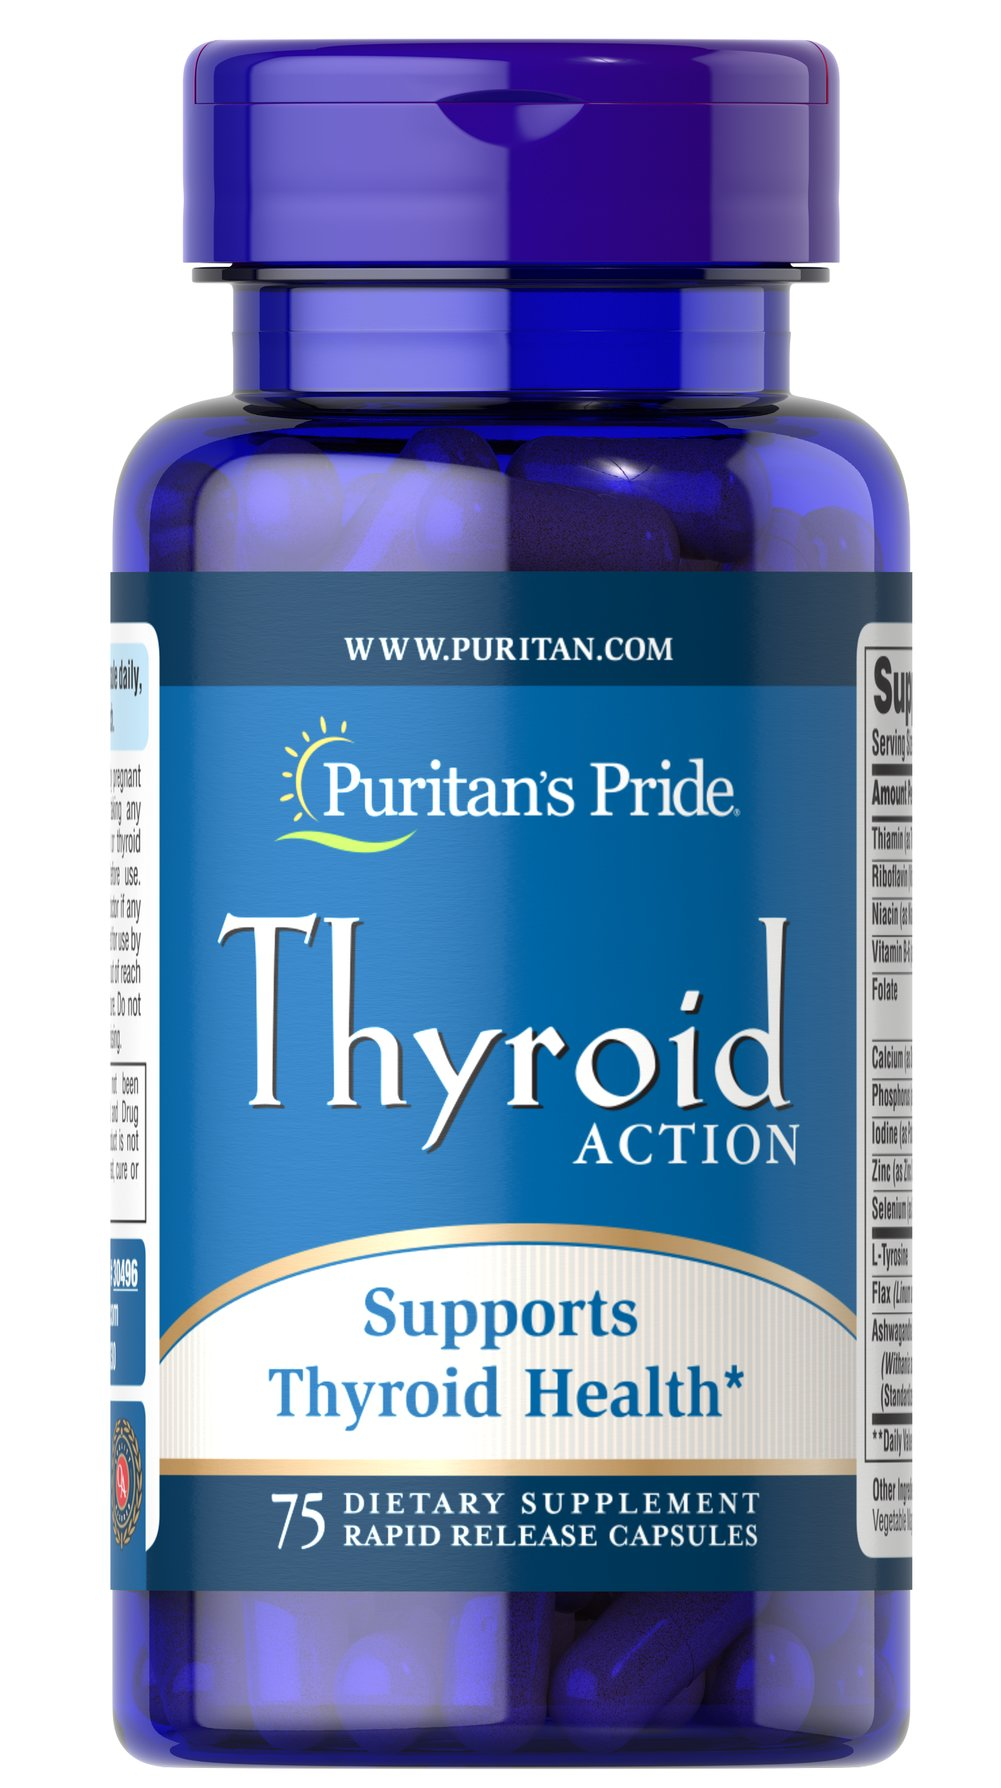 Thyroid Action